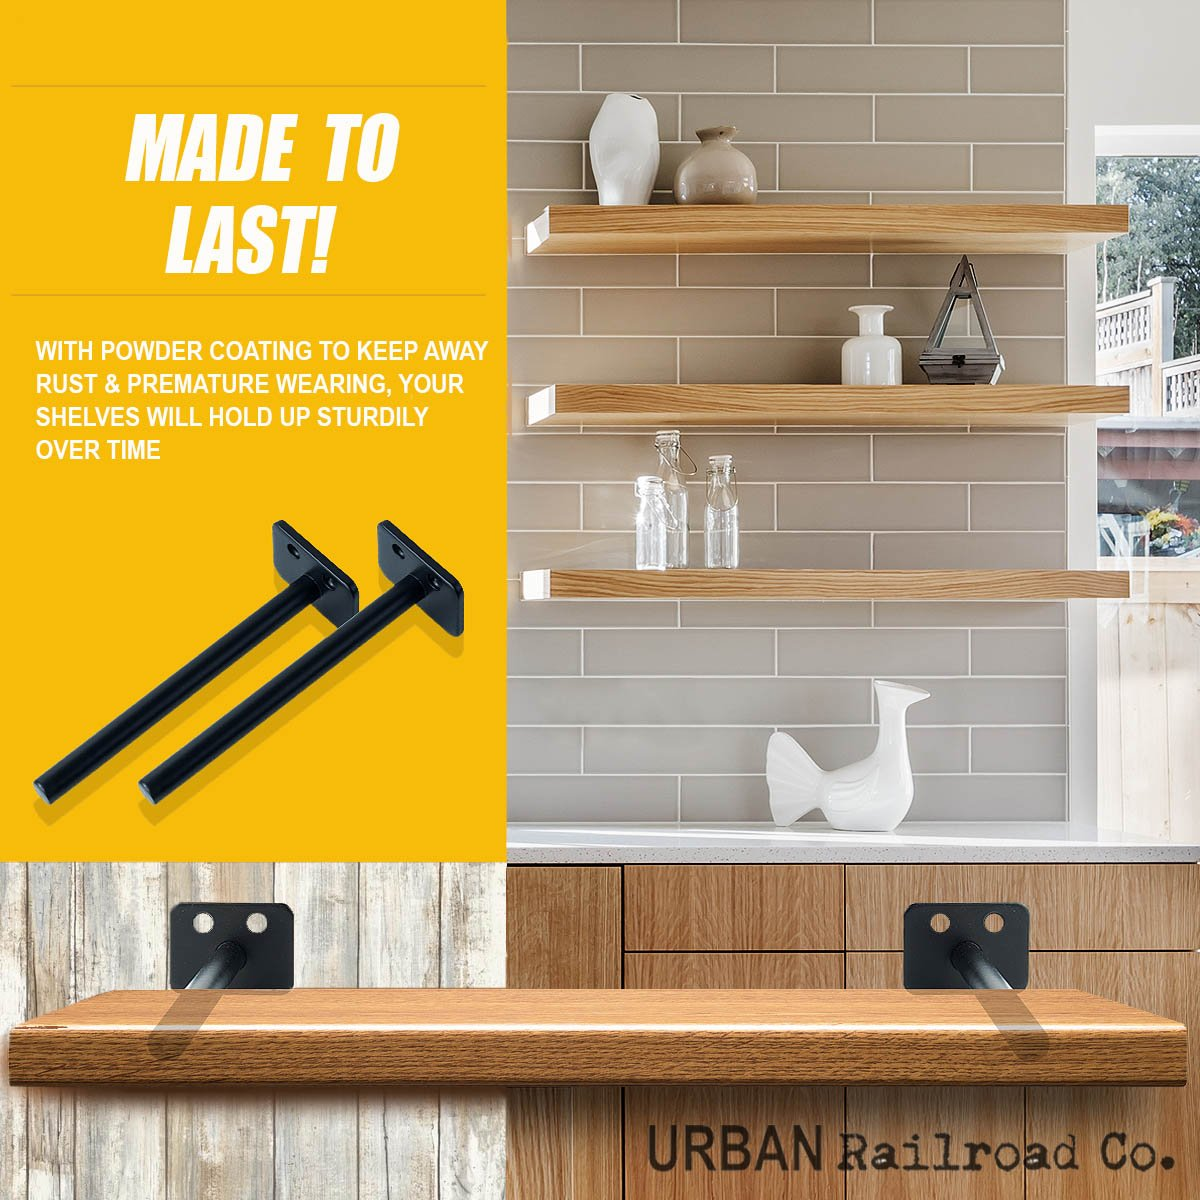 solid steel floating shelf brackets rod with post diameter powder coated finish rustproof blind supports flush fit subfloor for vinyl tile string shelving ikea closet drawers